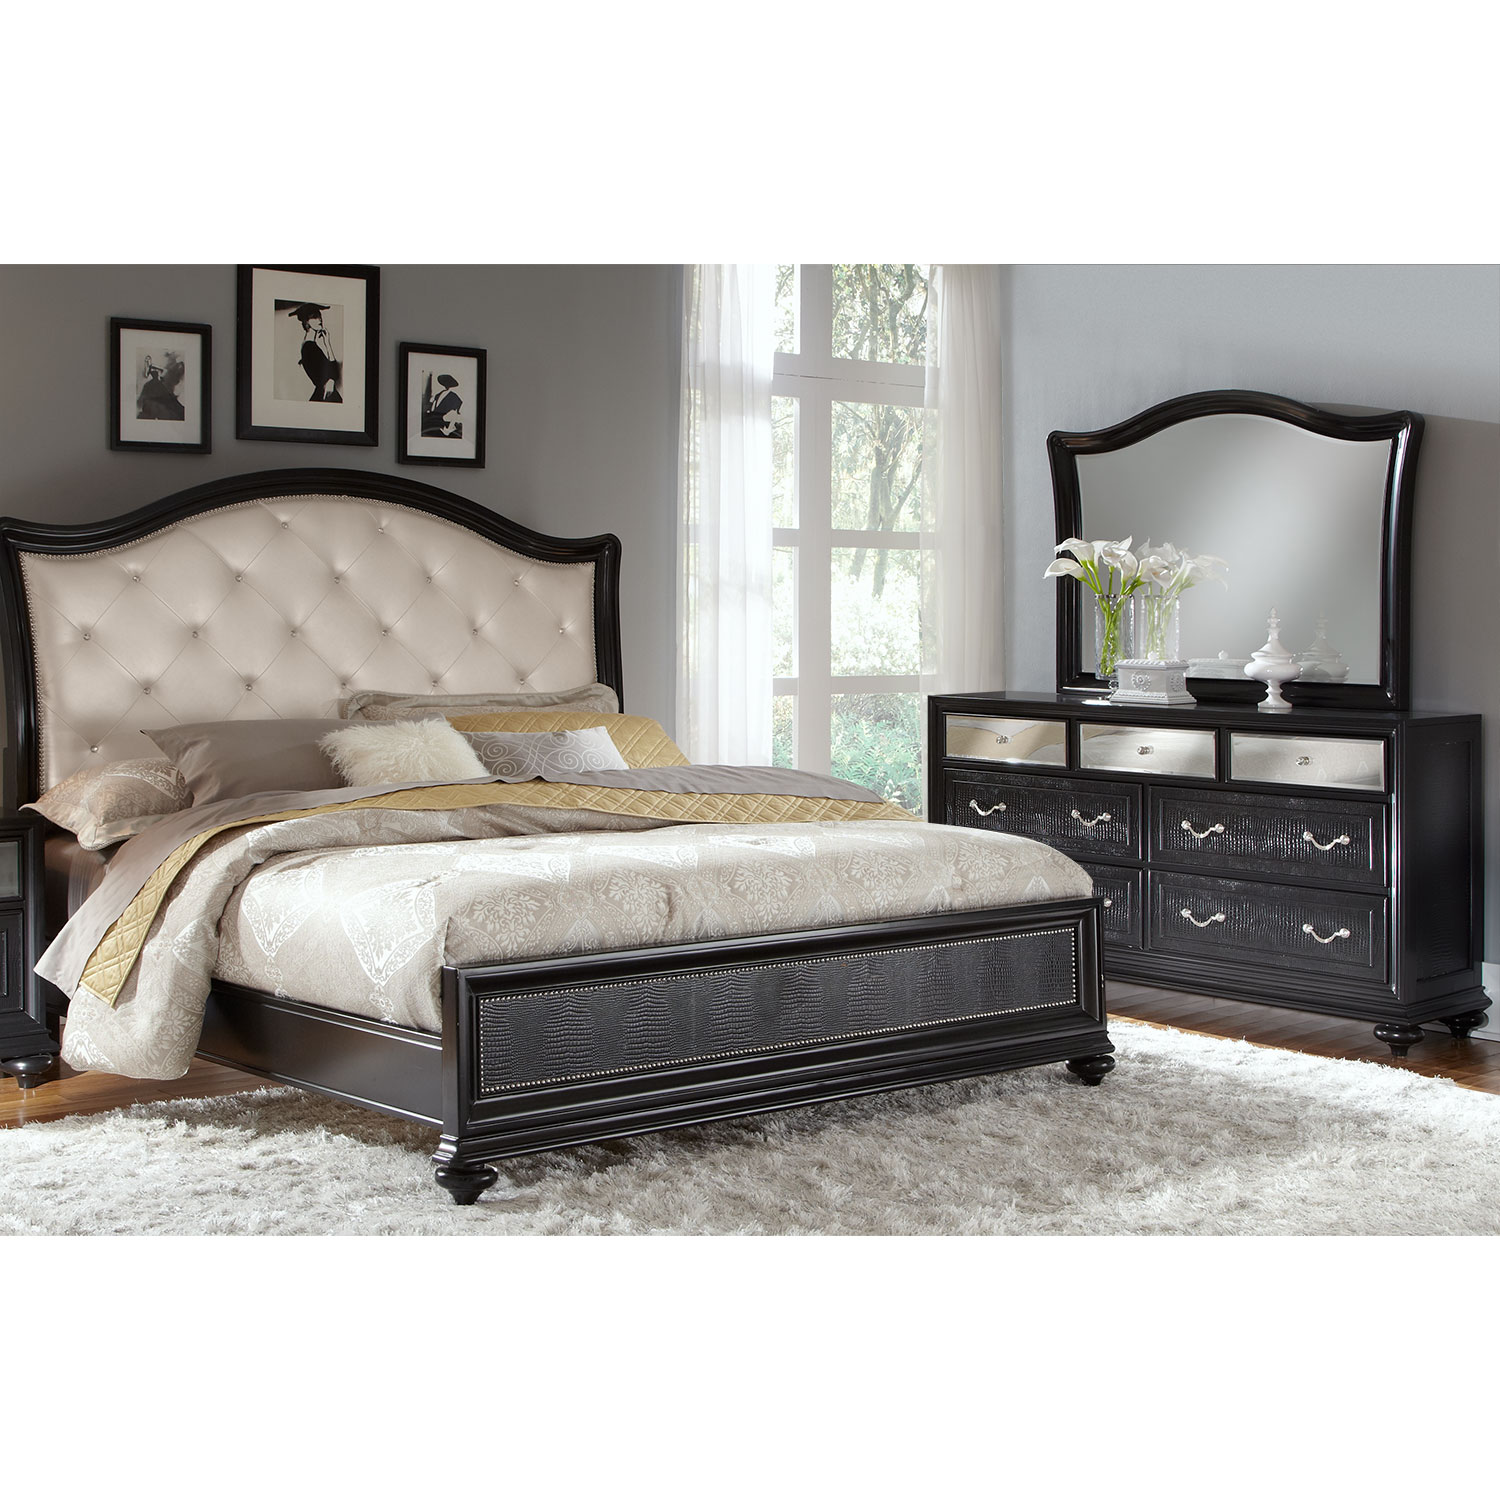 Marilyn 5 Piece King Bedroom Set Ebony American Signature